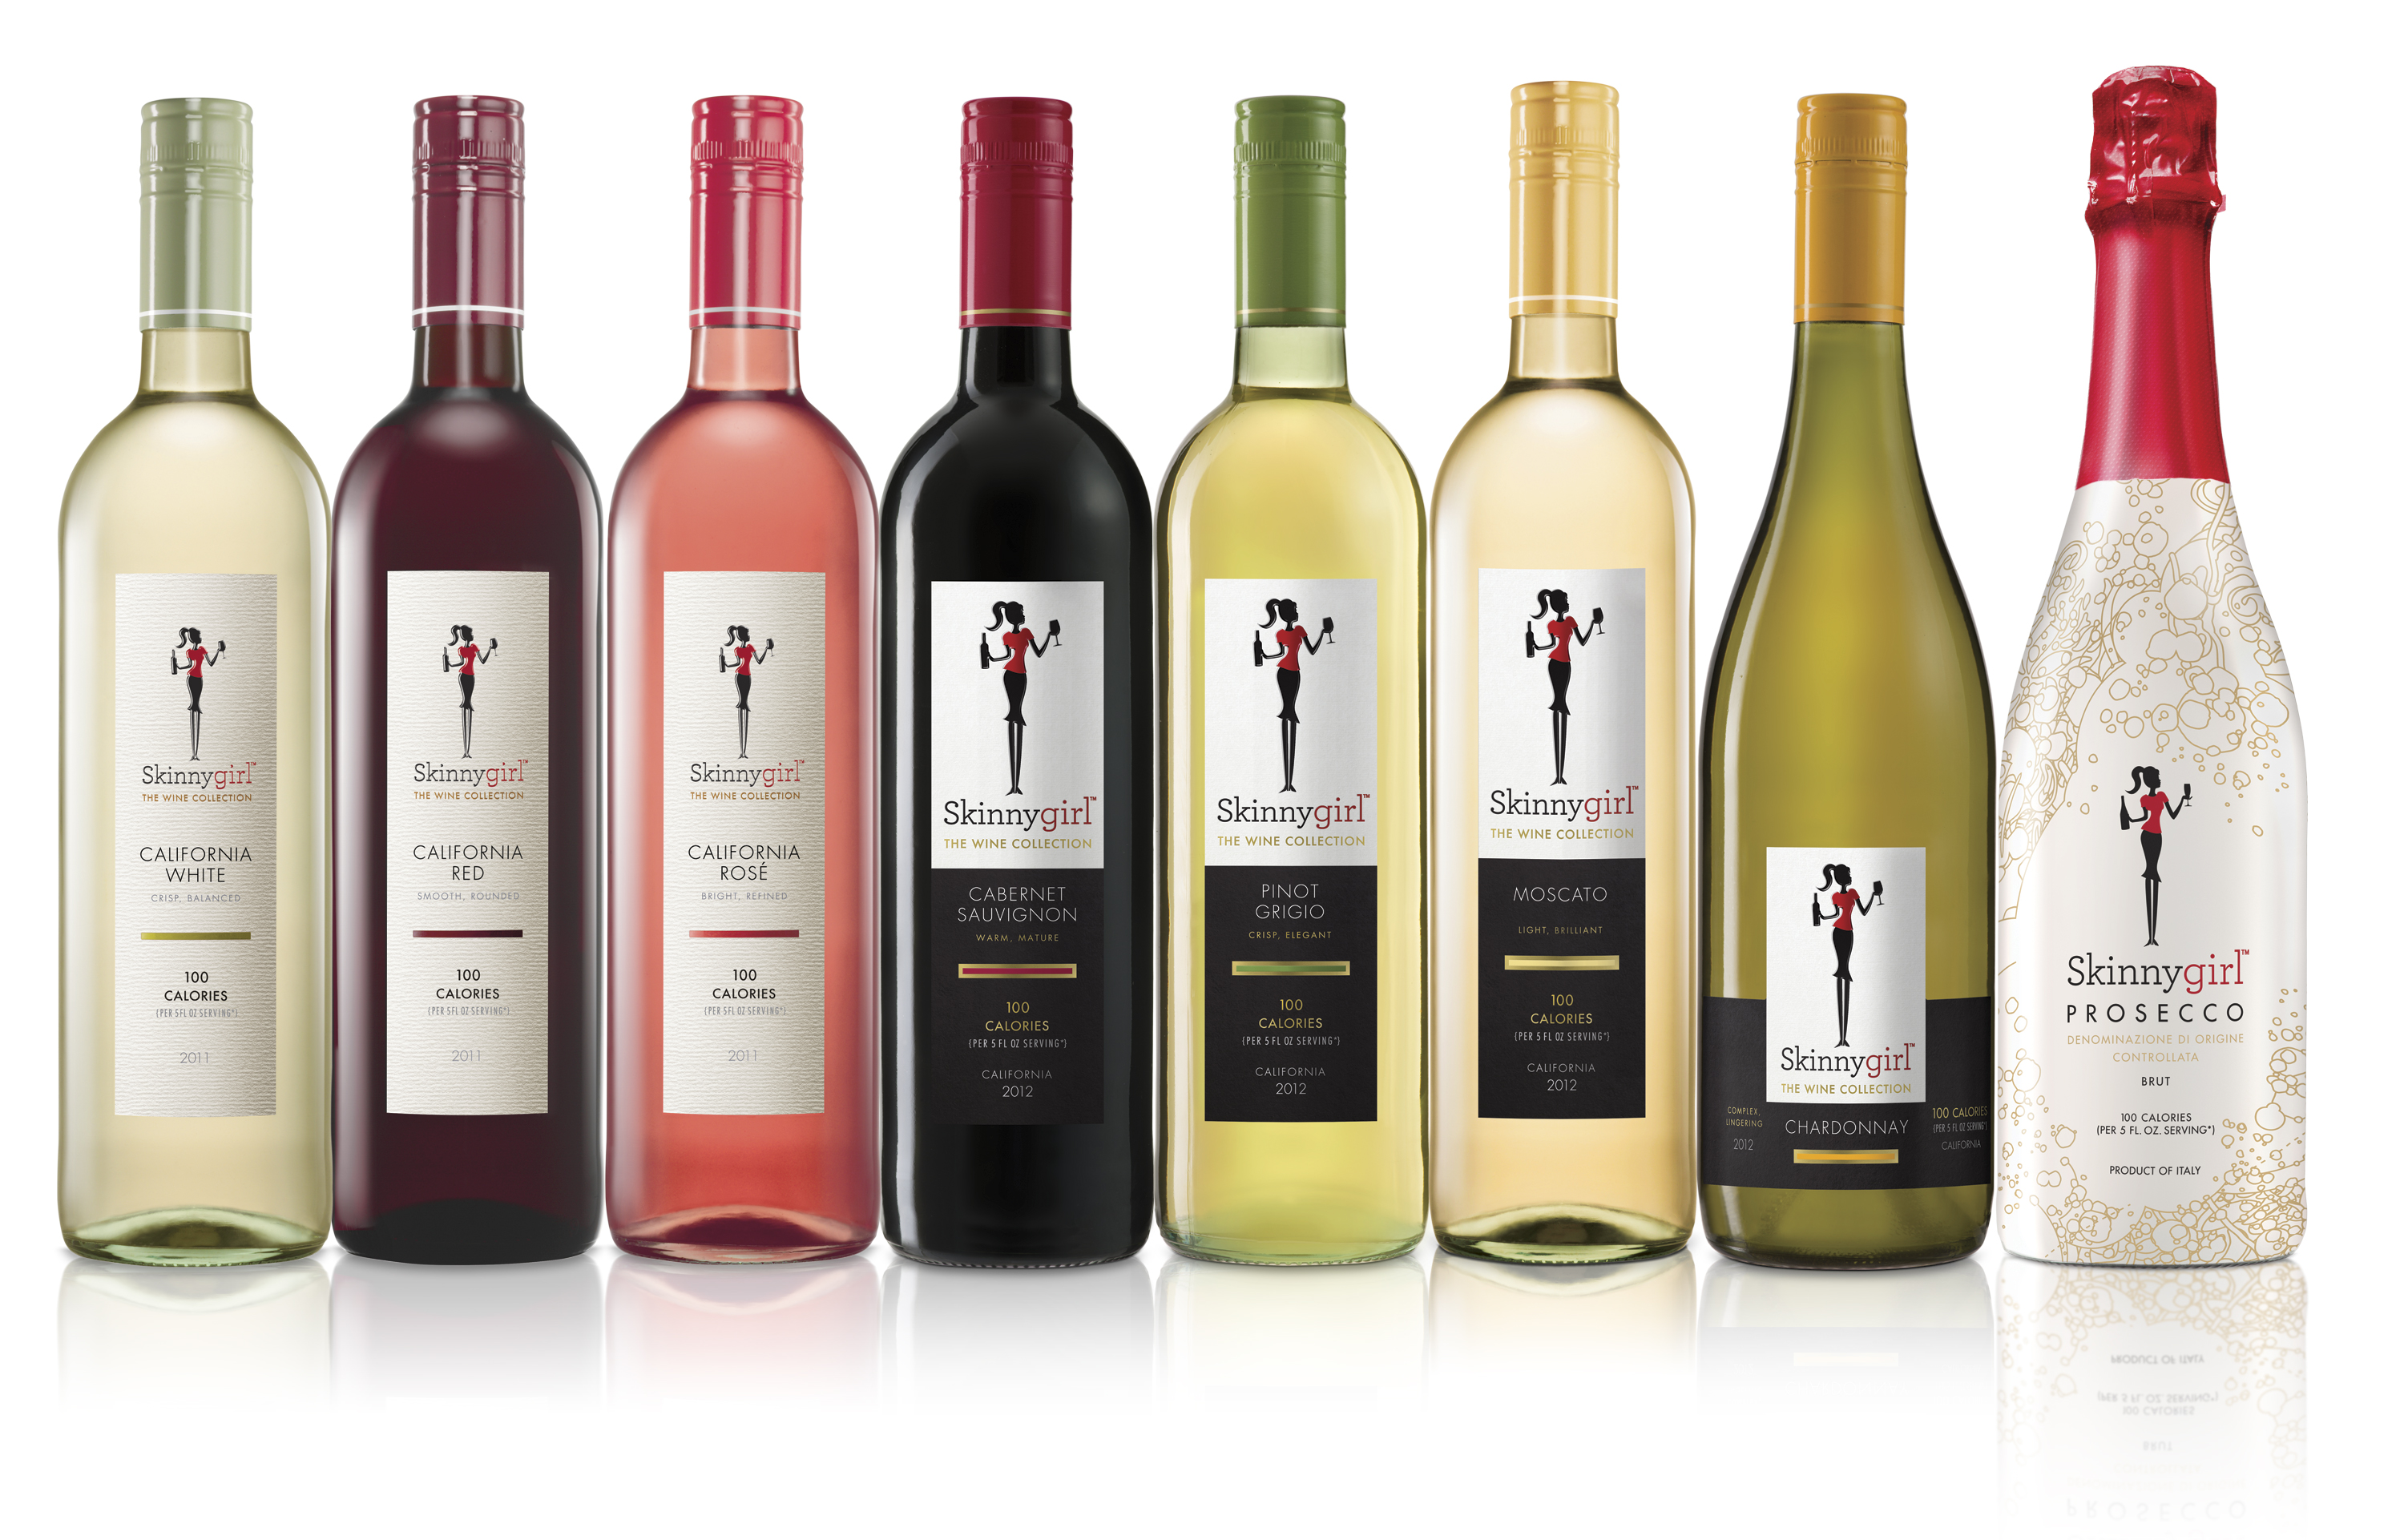 The Skinnygirl brand, founded by reality TV star Bethenny Frankel, has a line of low-calorie wines.